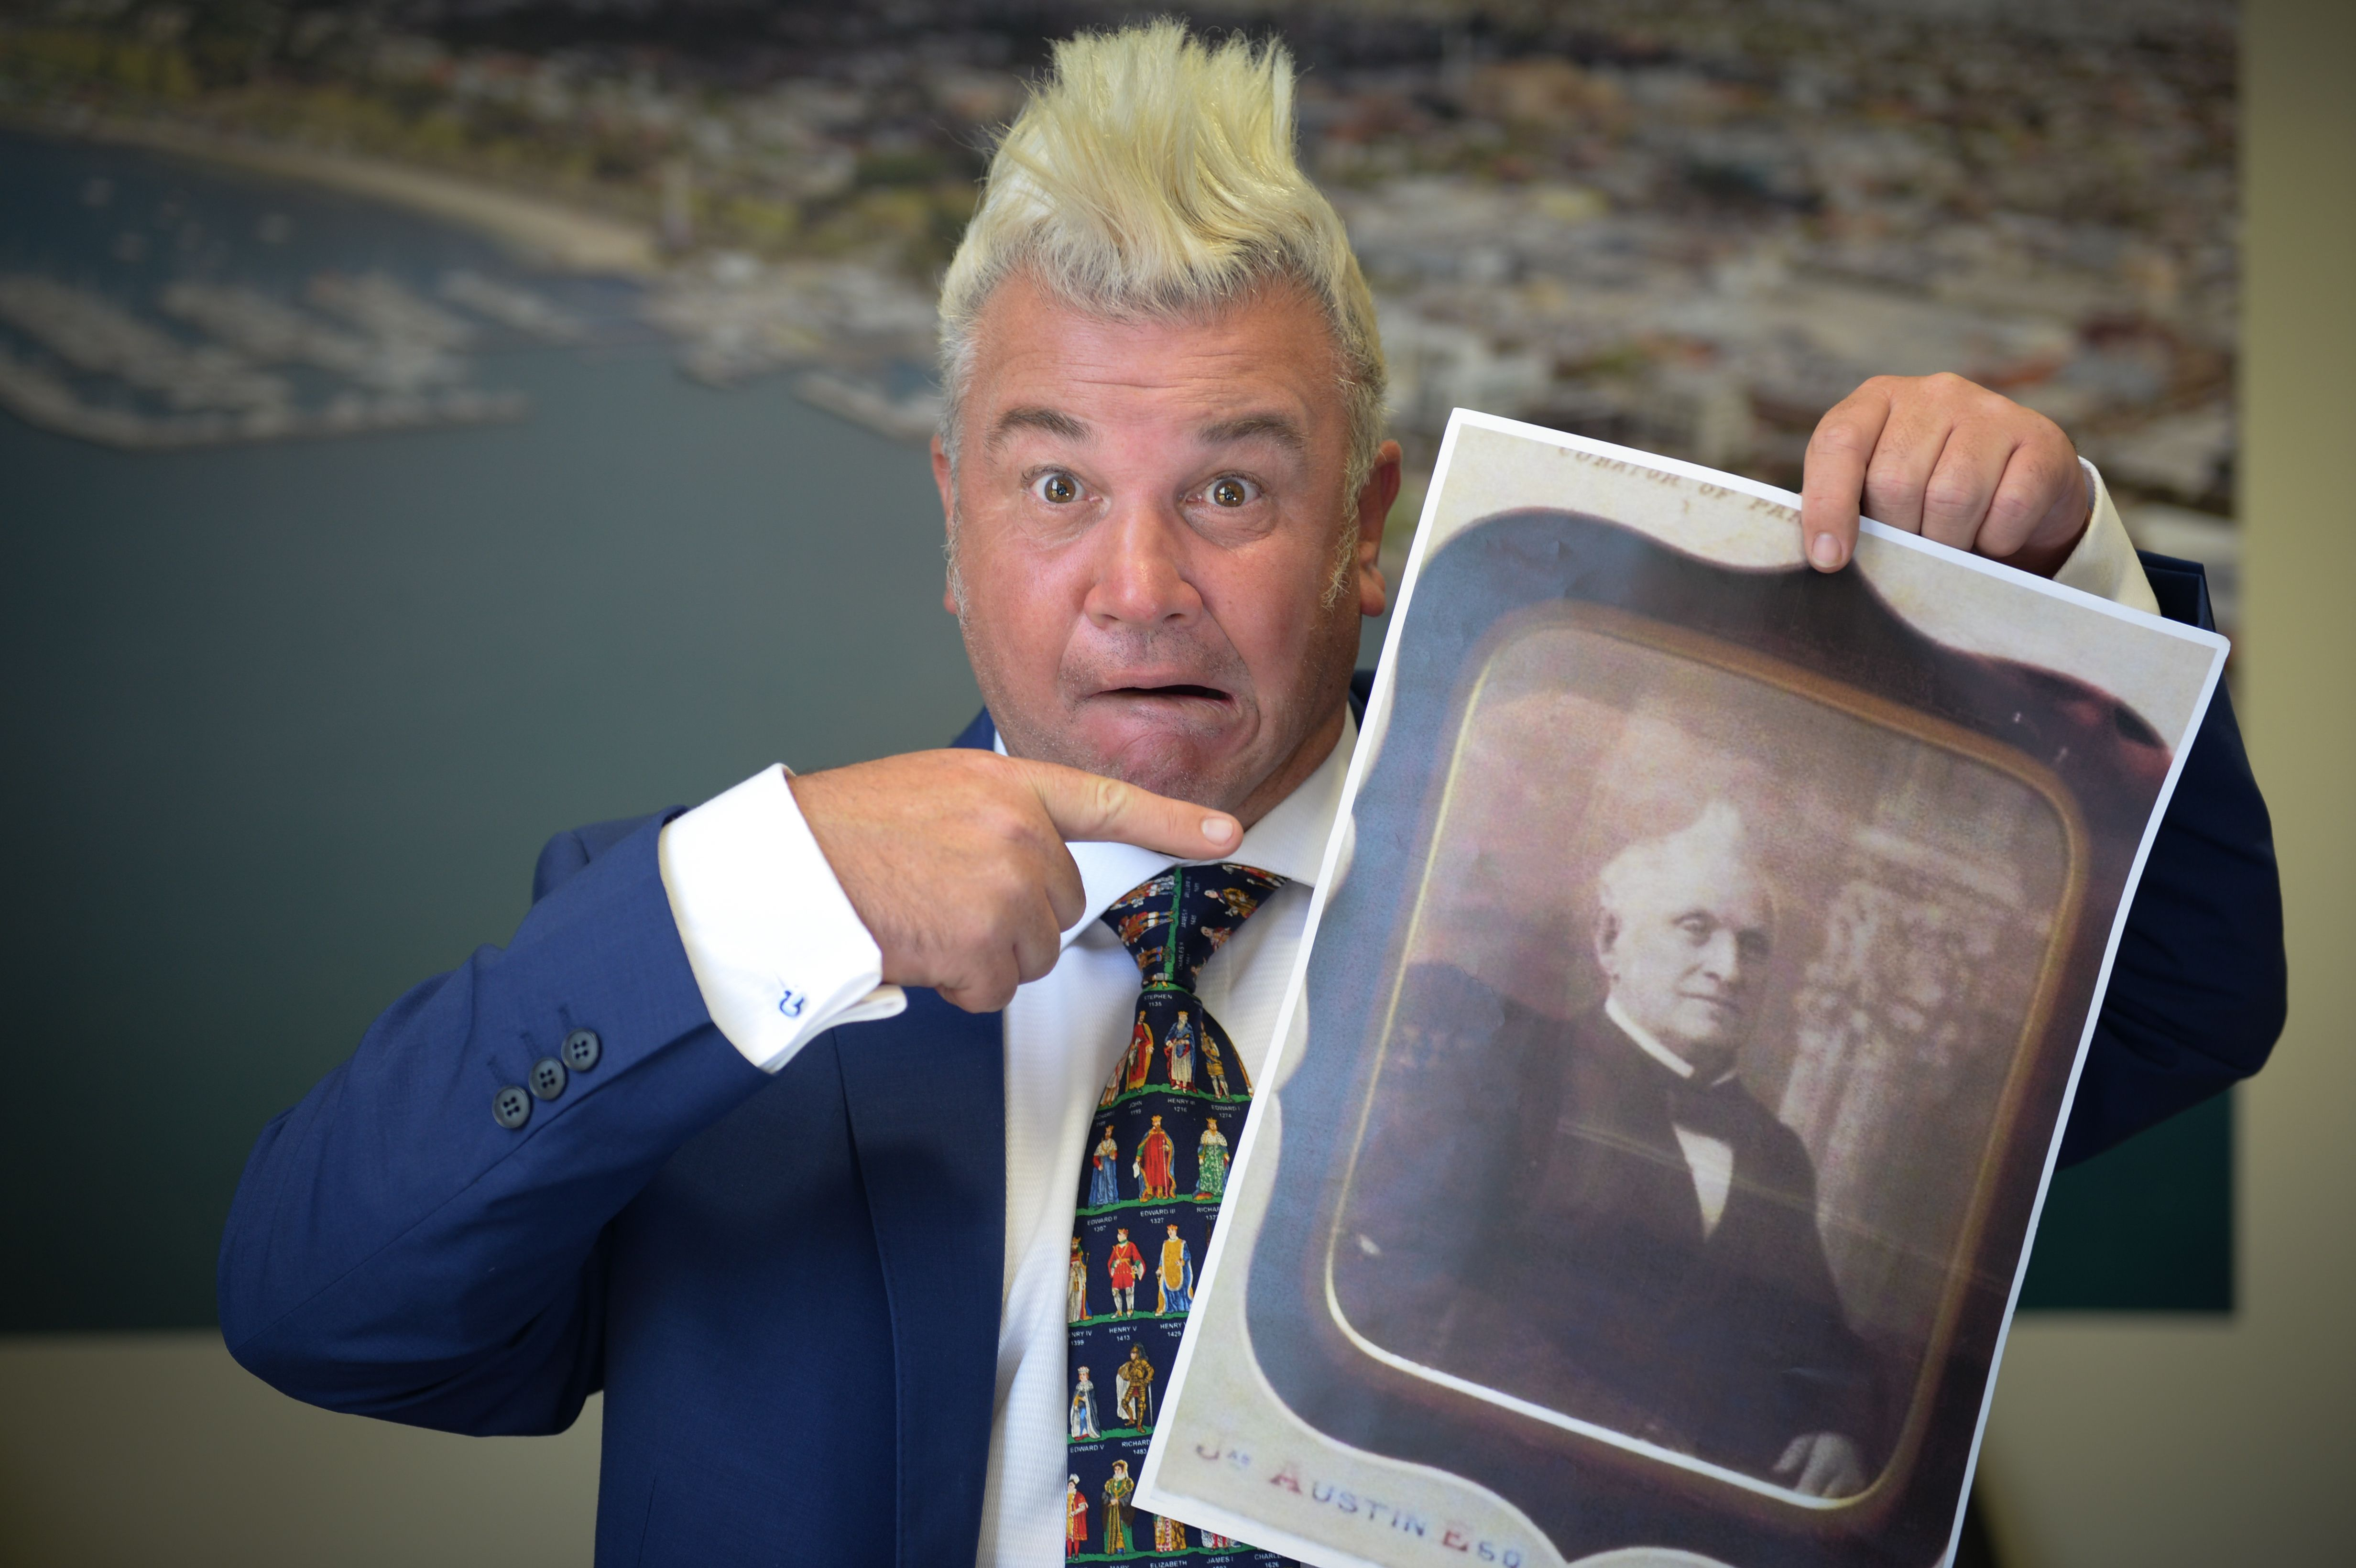 Darryn Lyons Was Stunned To Find He S Not Geelong S First Mohawk Mayor That Honour Apparently Goes To Geelong S Second Mayor Austin Family Geelong City Hall